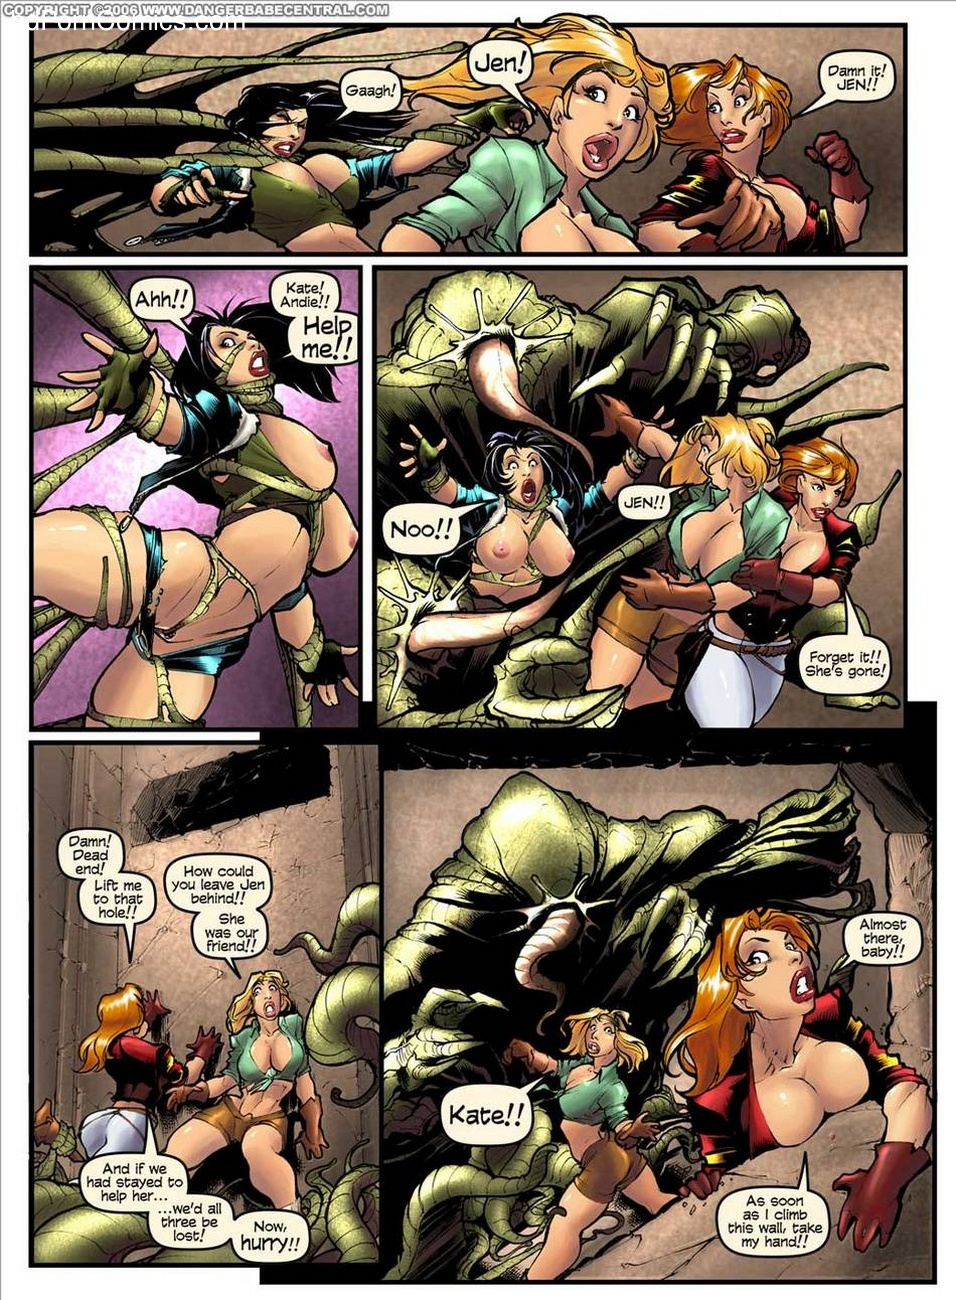 Sexy Seekers 1 - A Warm And Slimy Welcome 2 free sex comic